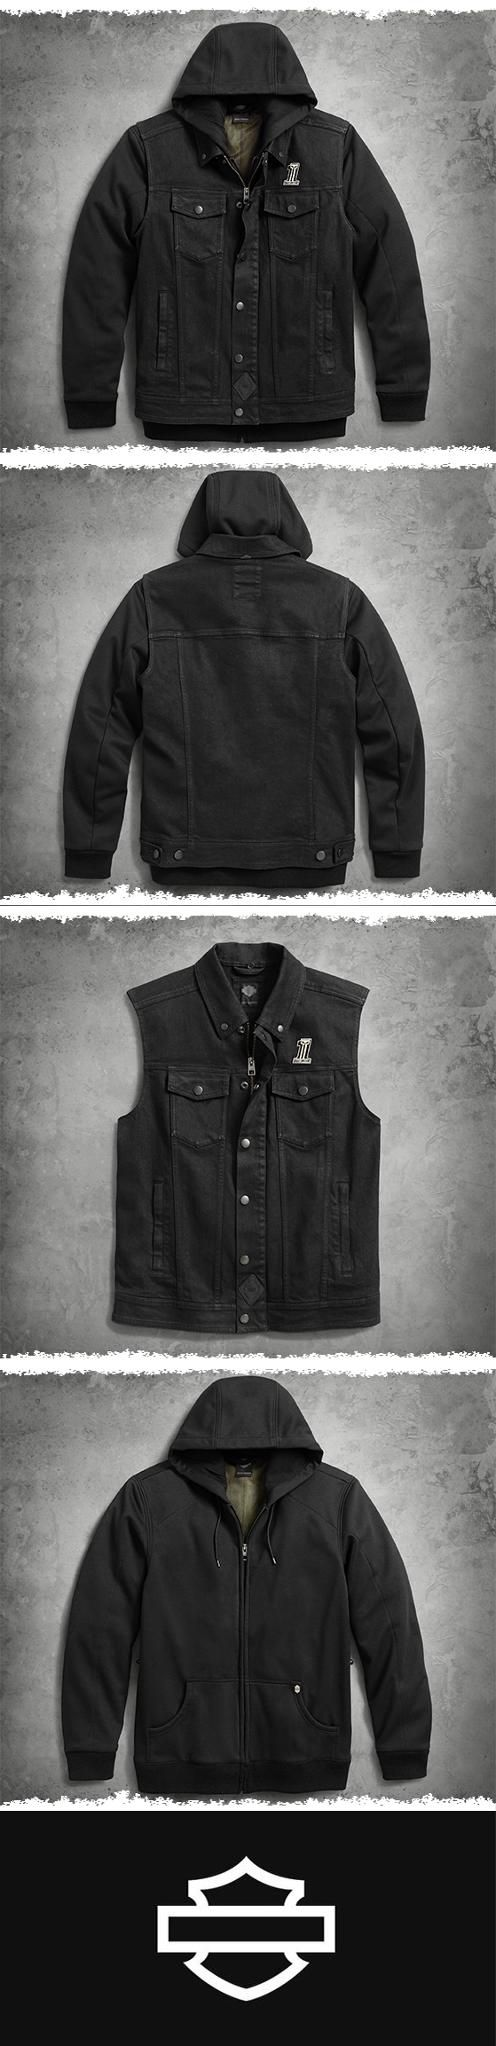 3 in 1 denim slim fit riding vest harley davidson and biker gear no problem the 3 in 1 vest is on standby harley davidson motorcyclesharley sciox Image collections